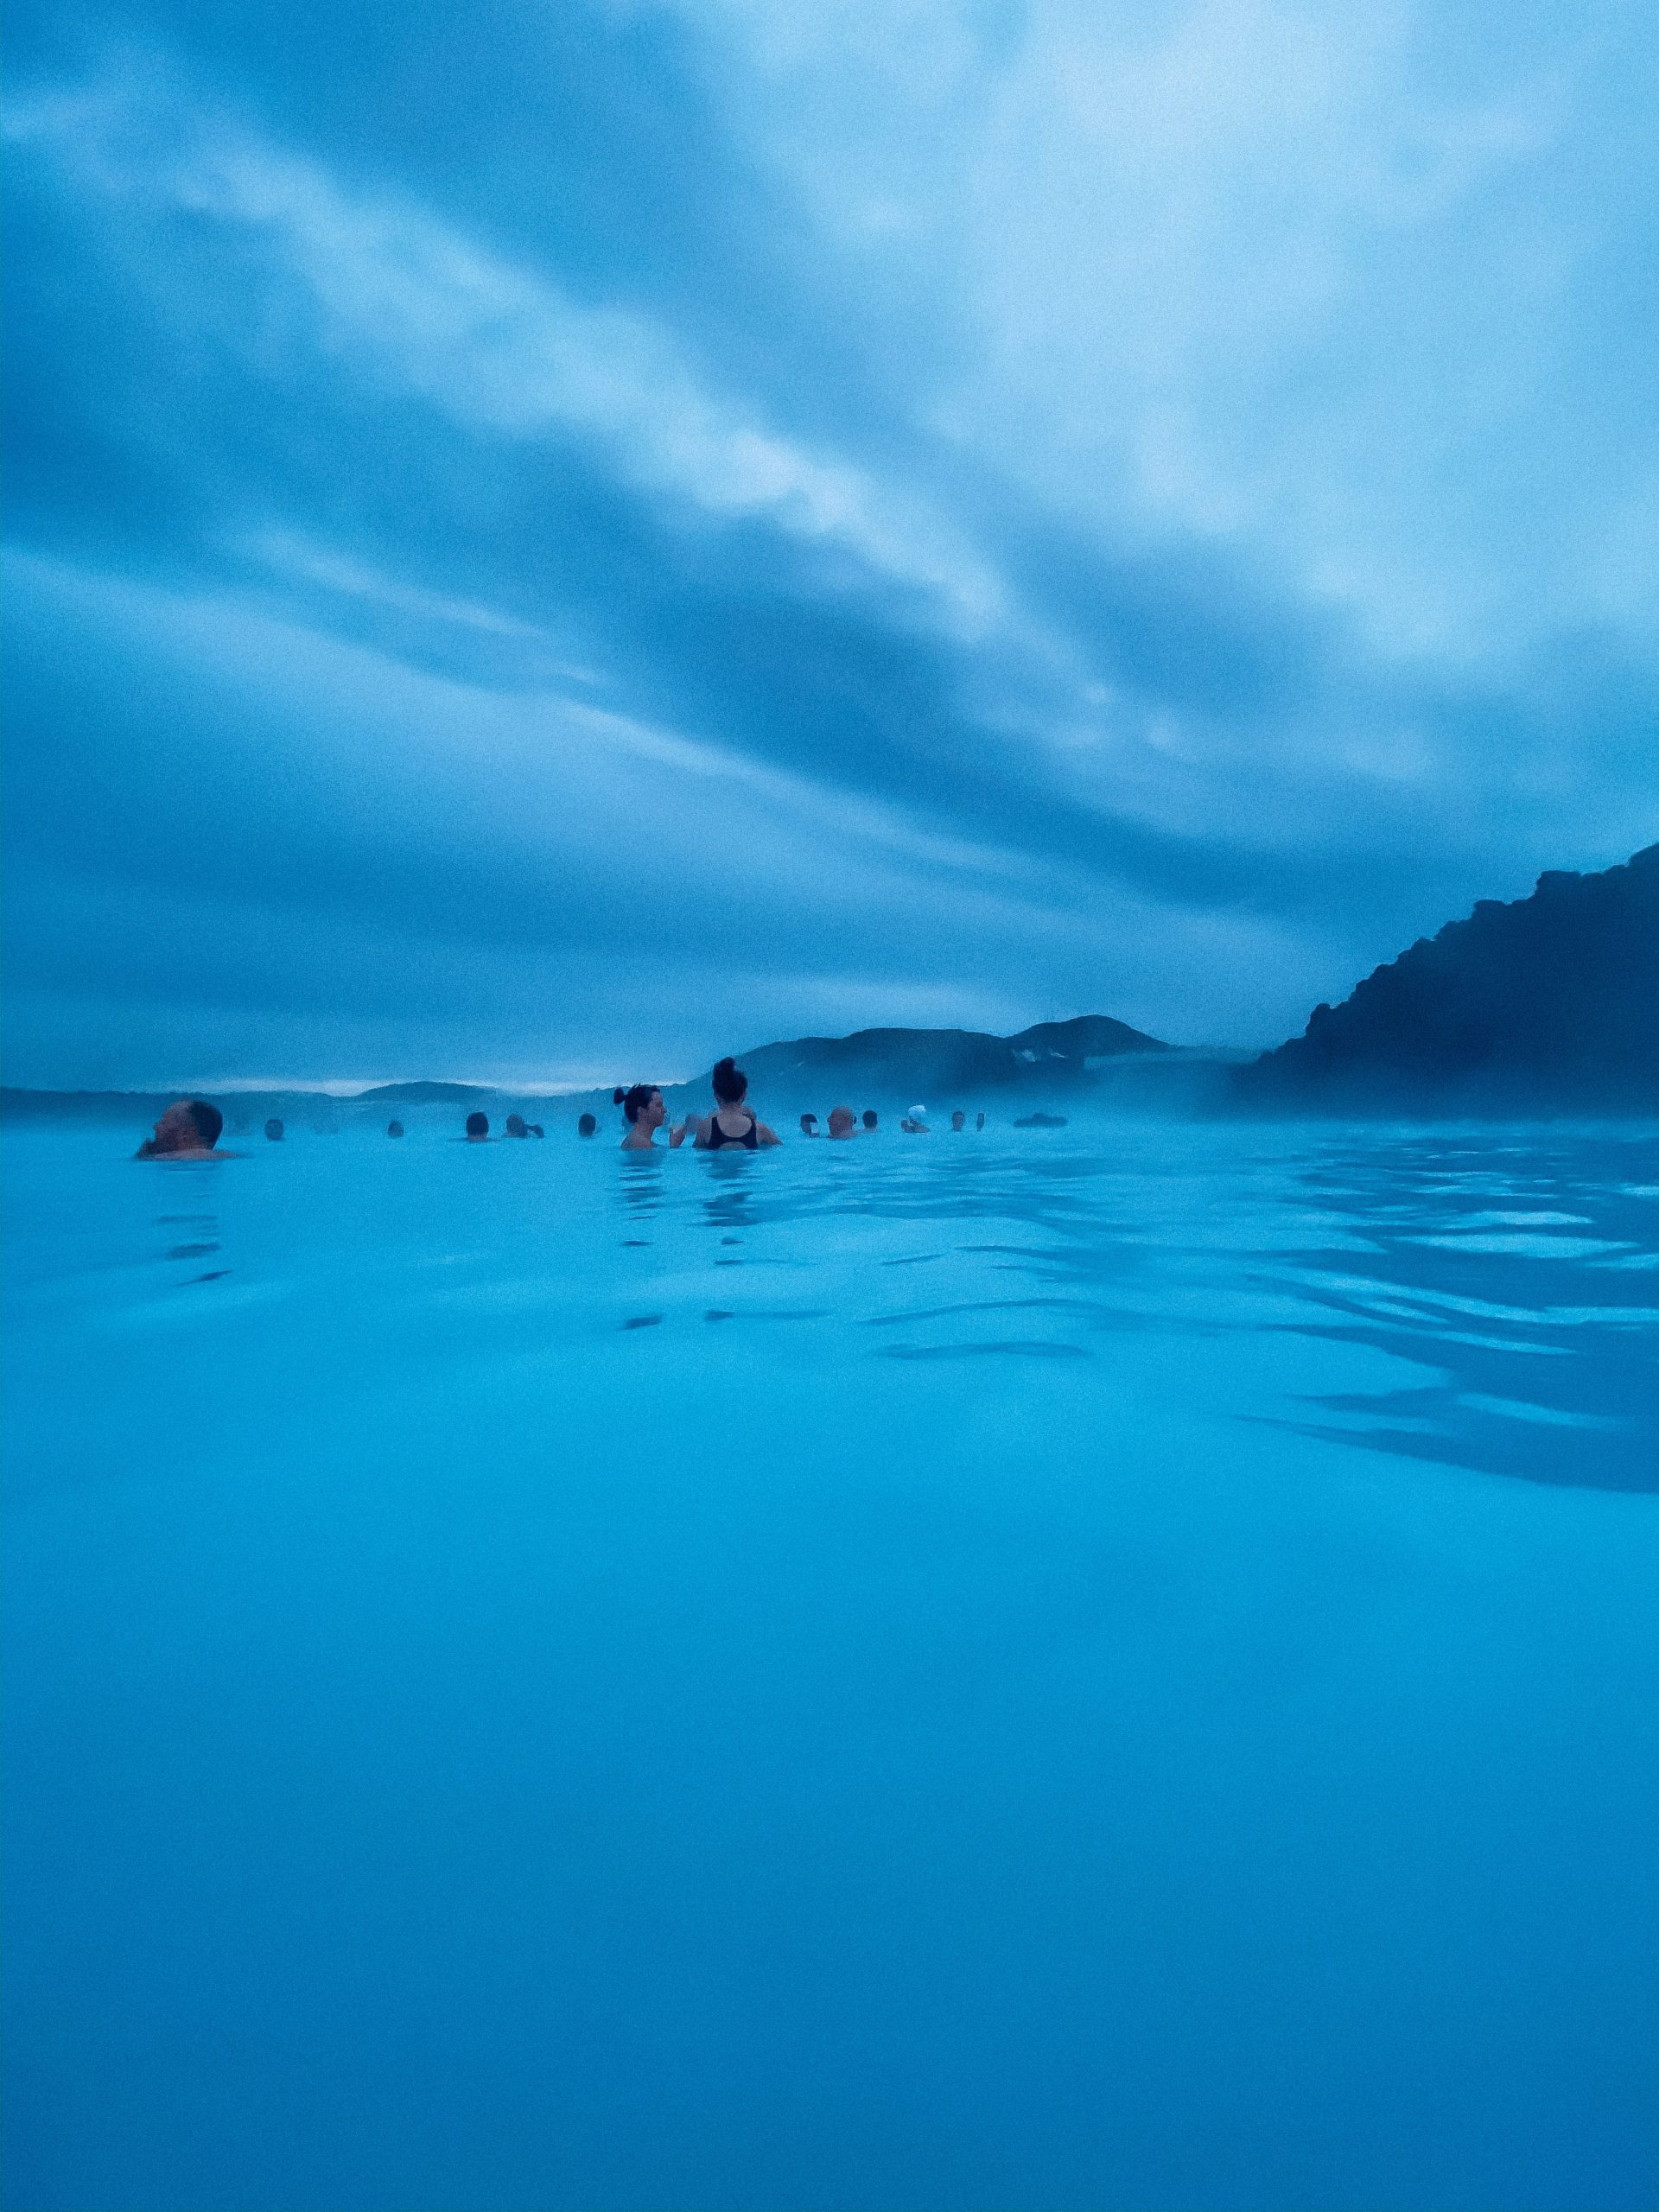 Blue lagoon in Iceland in the dark